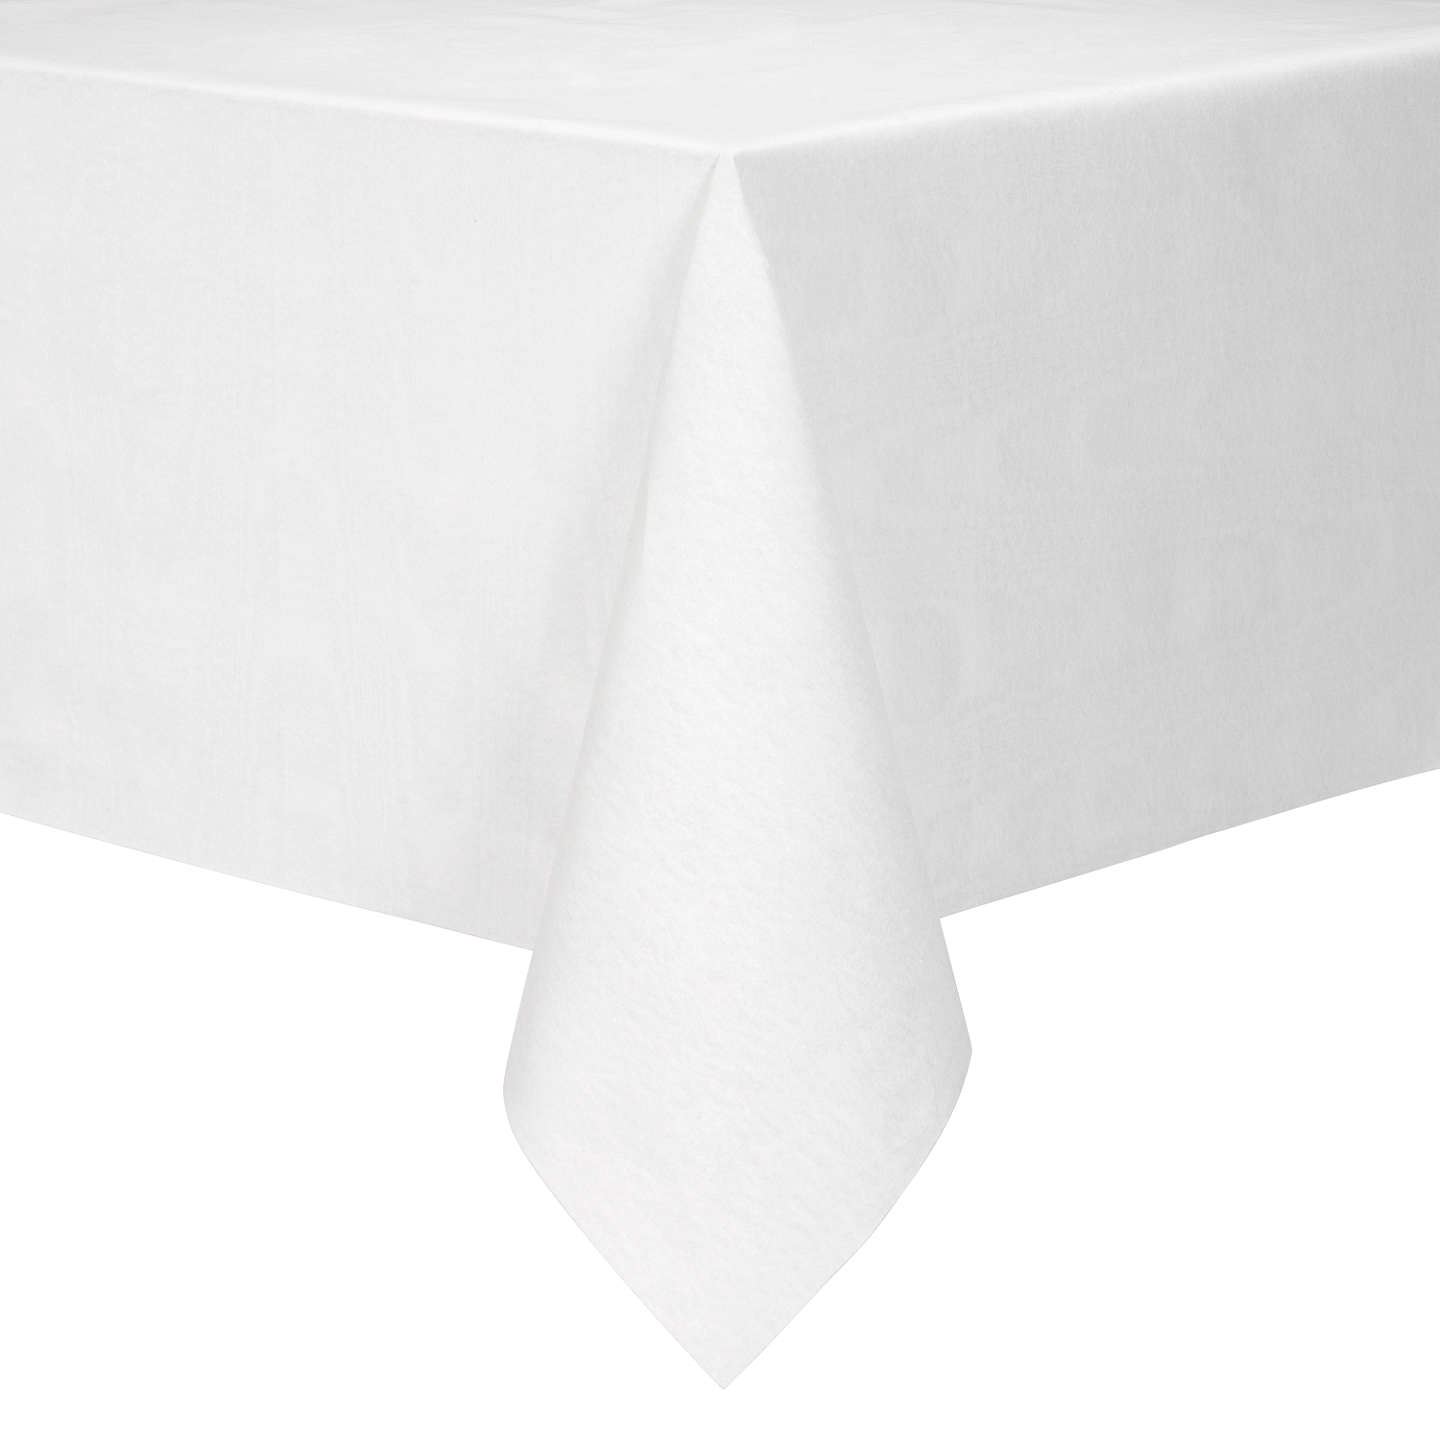 Charming BuyCaspari Paper Table Cover, Silver Moire Online At Johnlewis.com ...